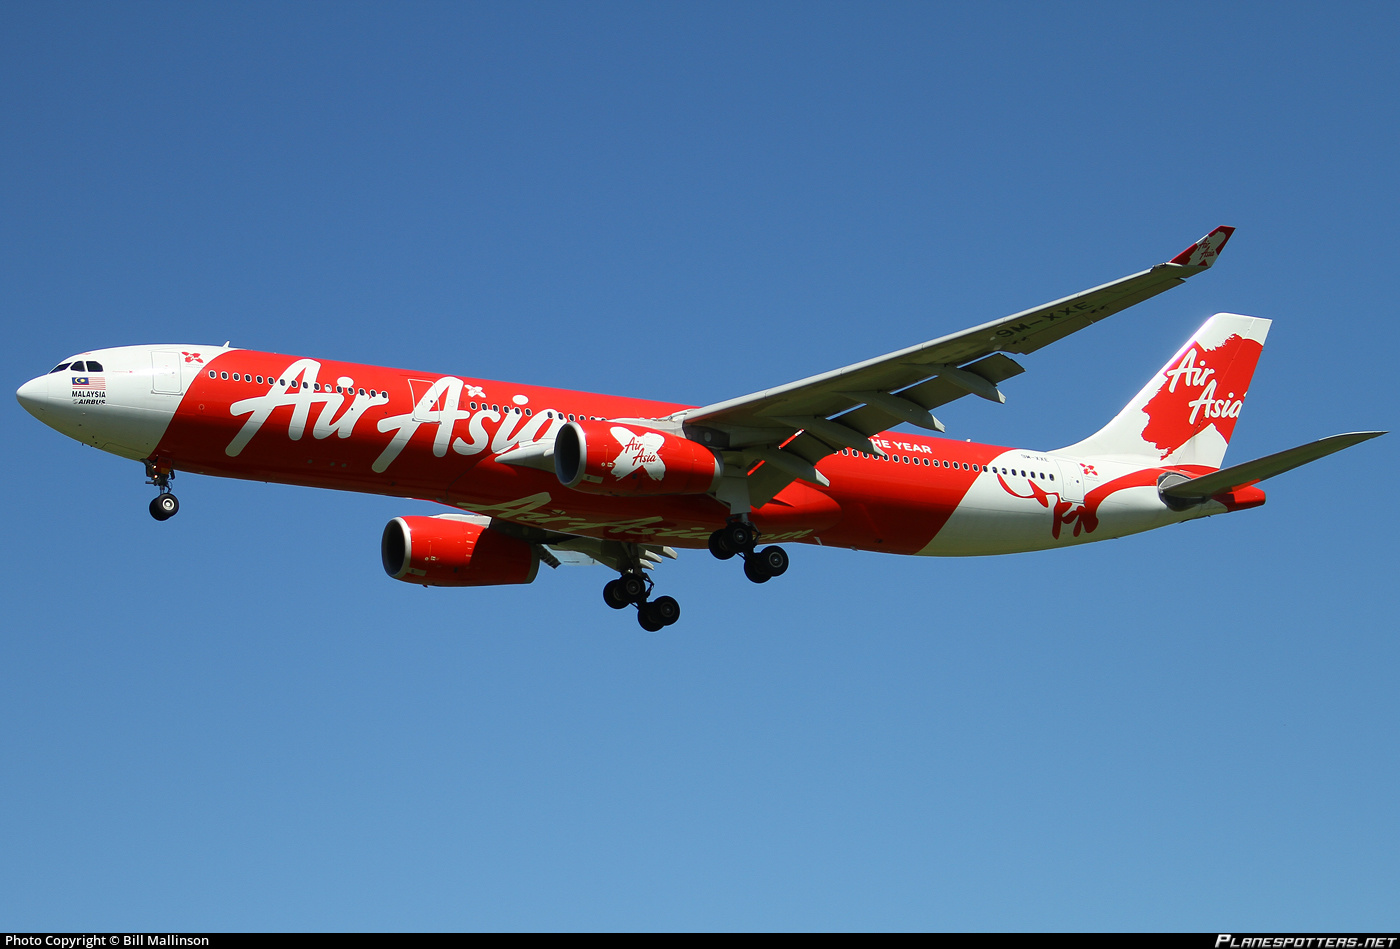 airasia how to cancel flight